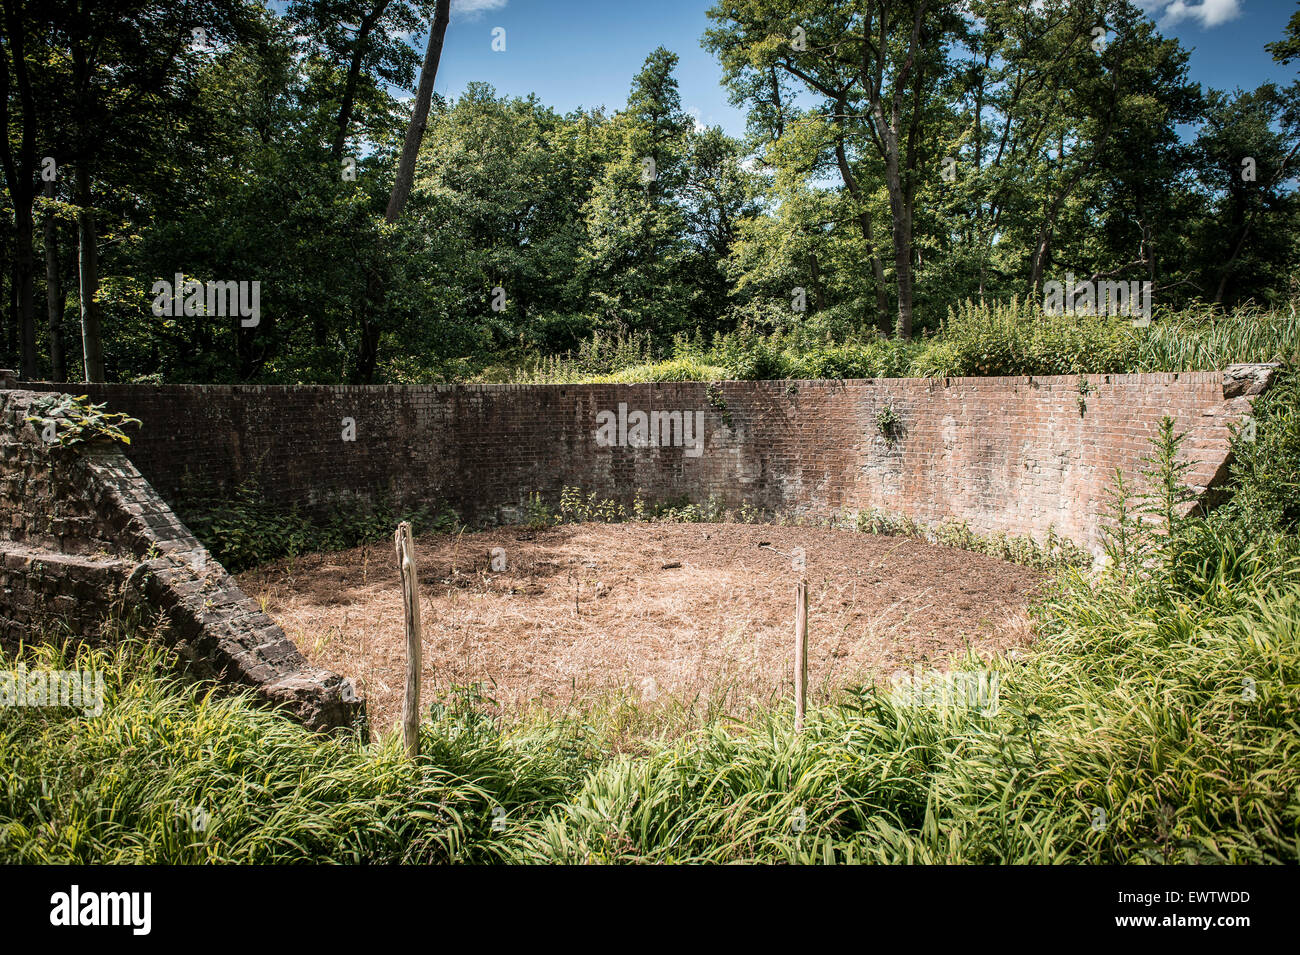 Abandoned buildings at the Royal Gunpowder Mills in Waltham Abbey - Stock Image